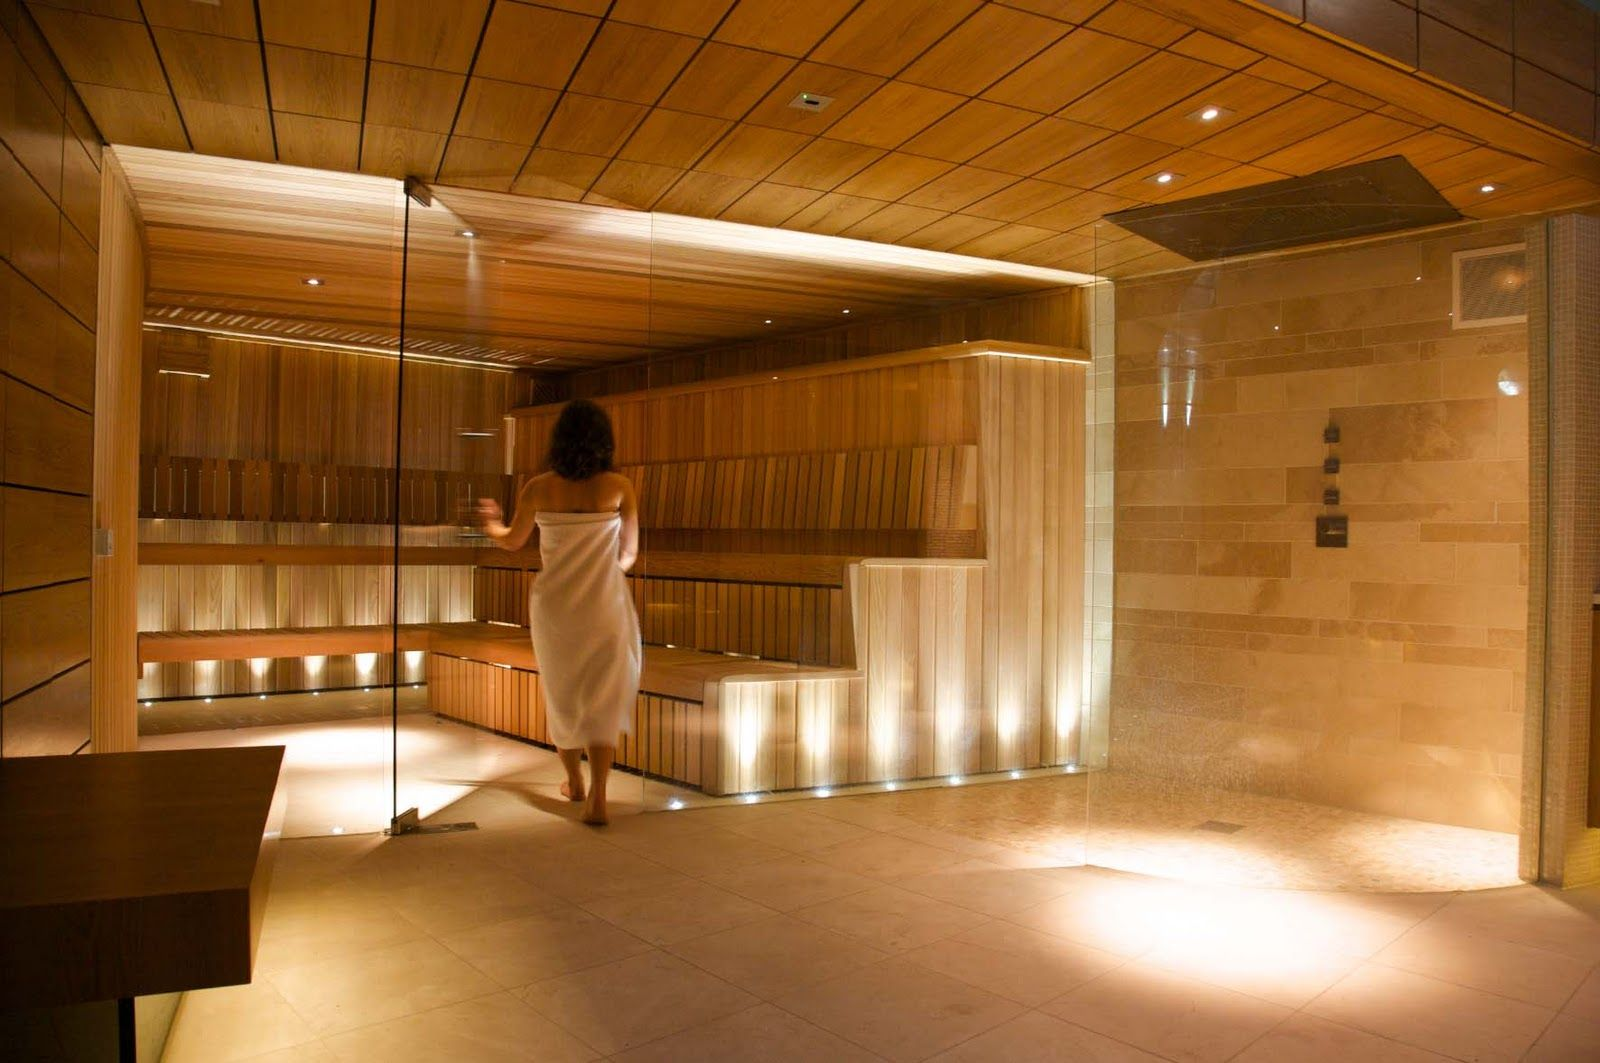 Sauna 24 Commercial Saunas The Steam Room And Spa Areas Are